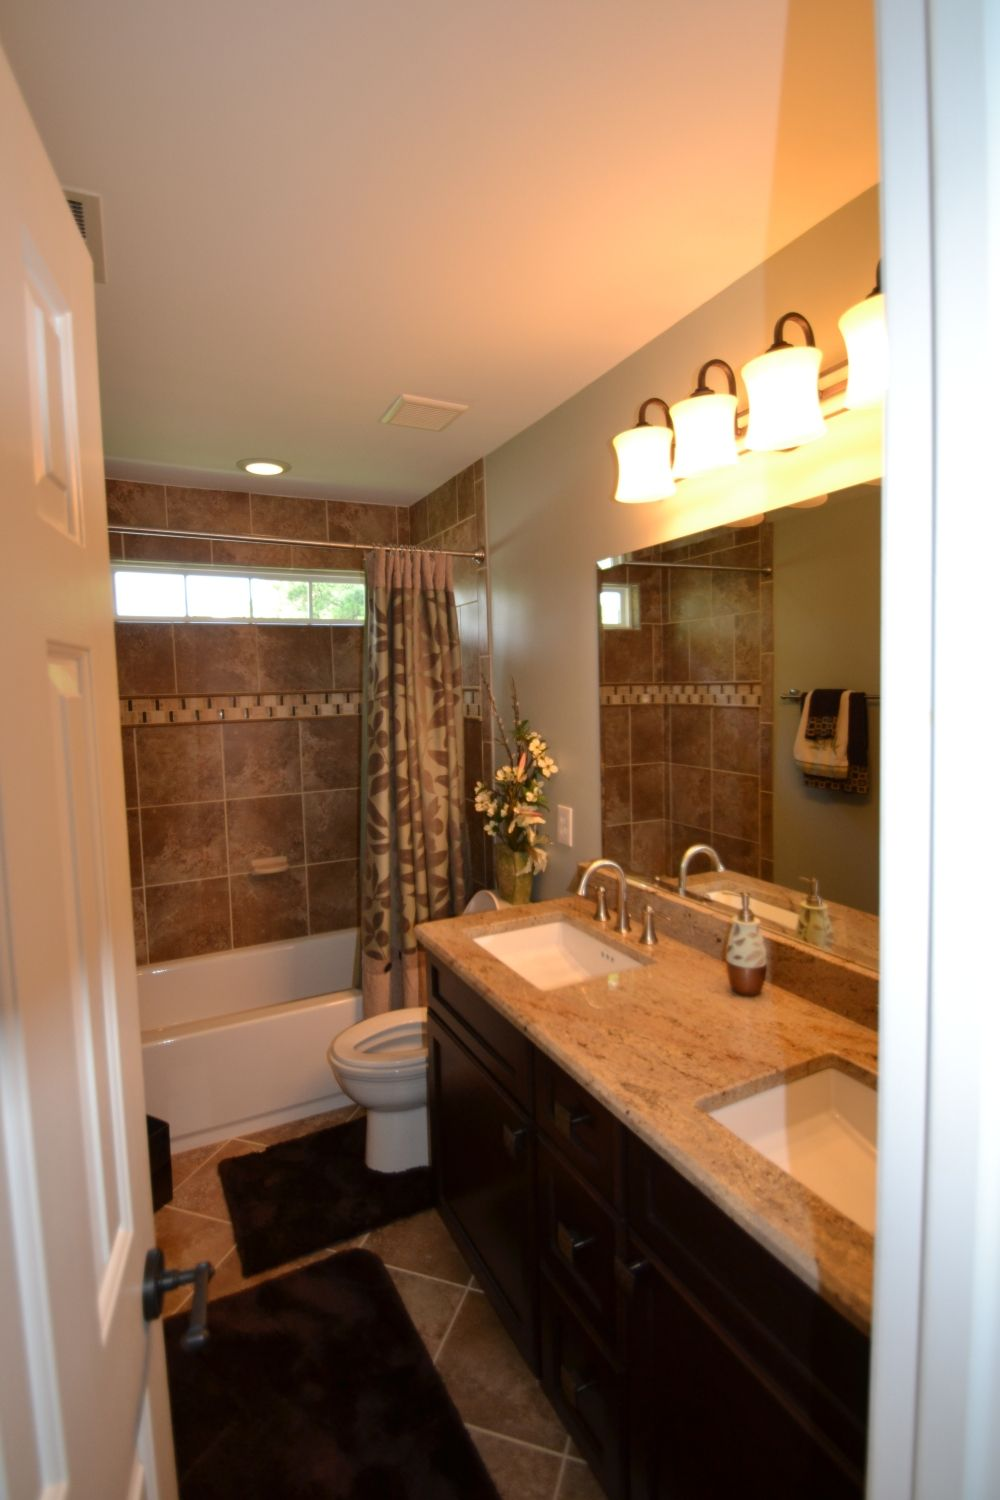 by using darker tones and lighting in the guest bathroom the entire room looks much